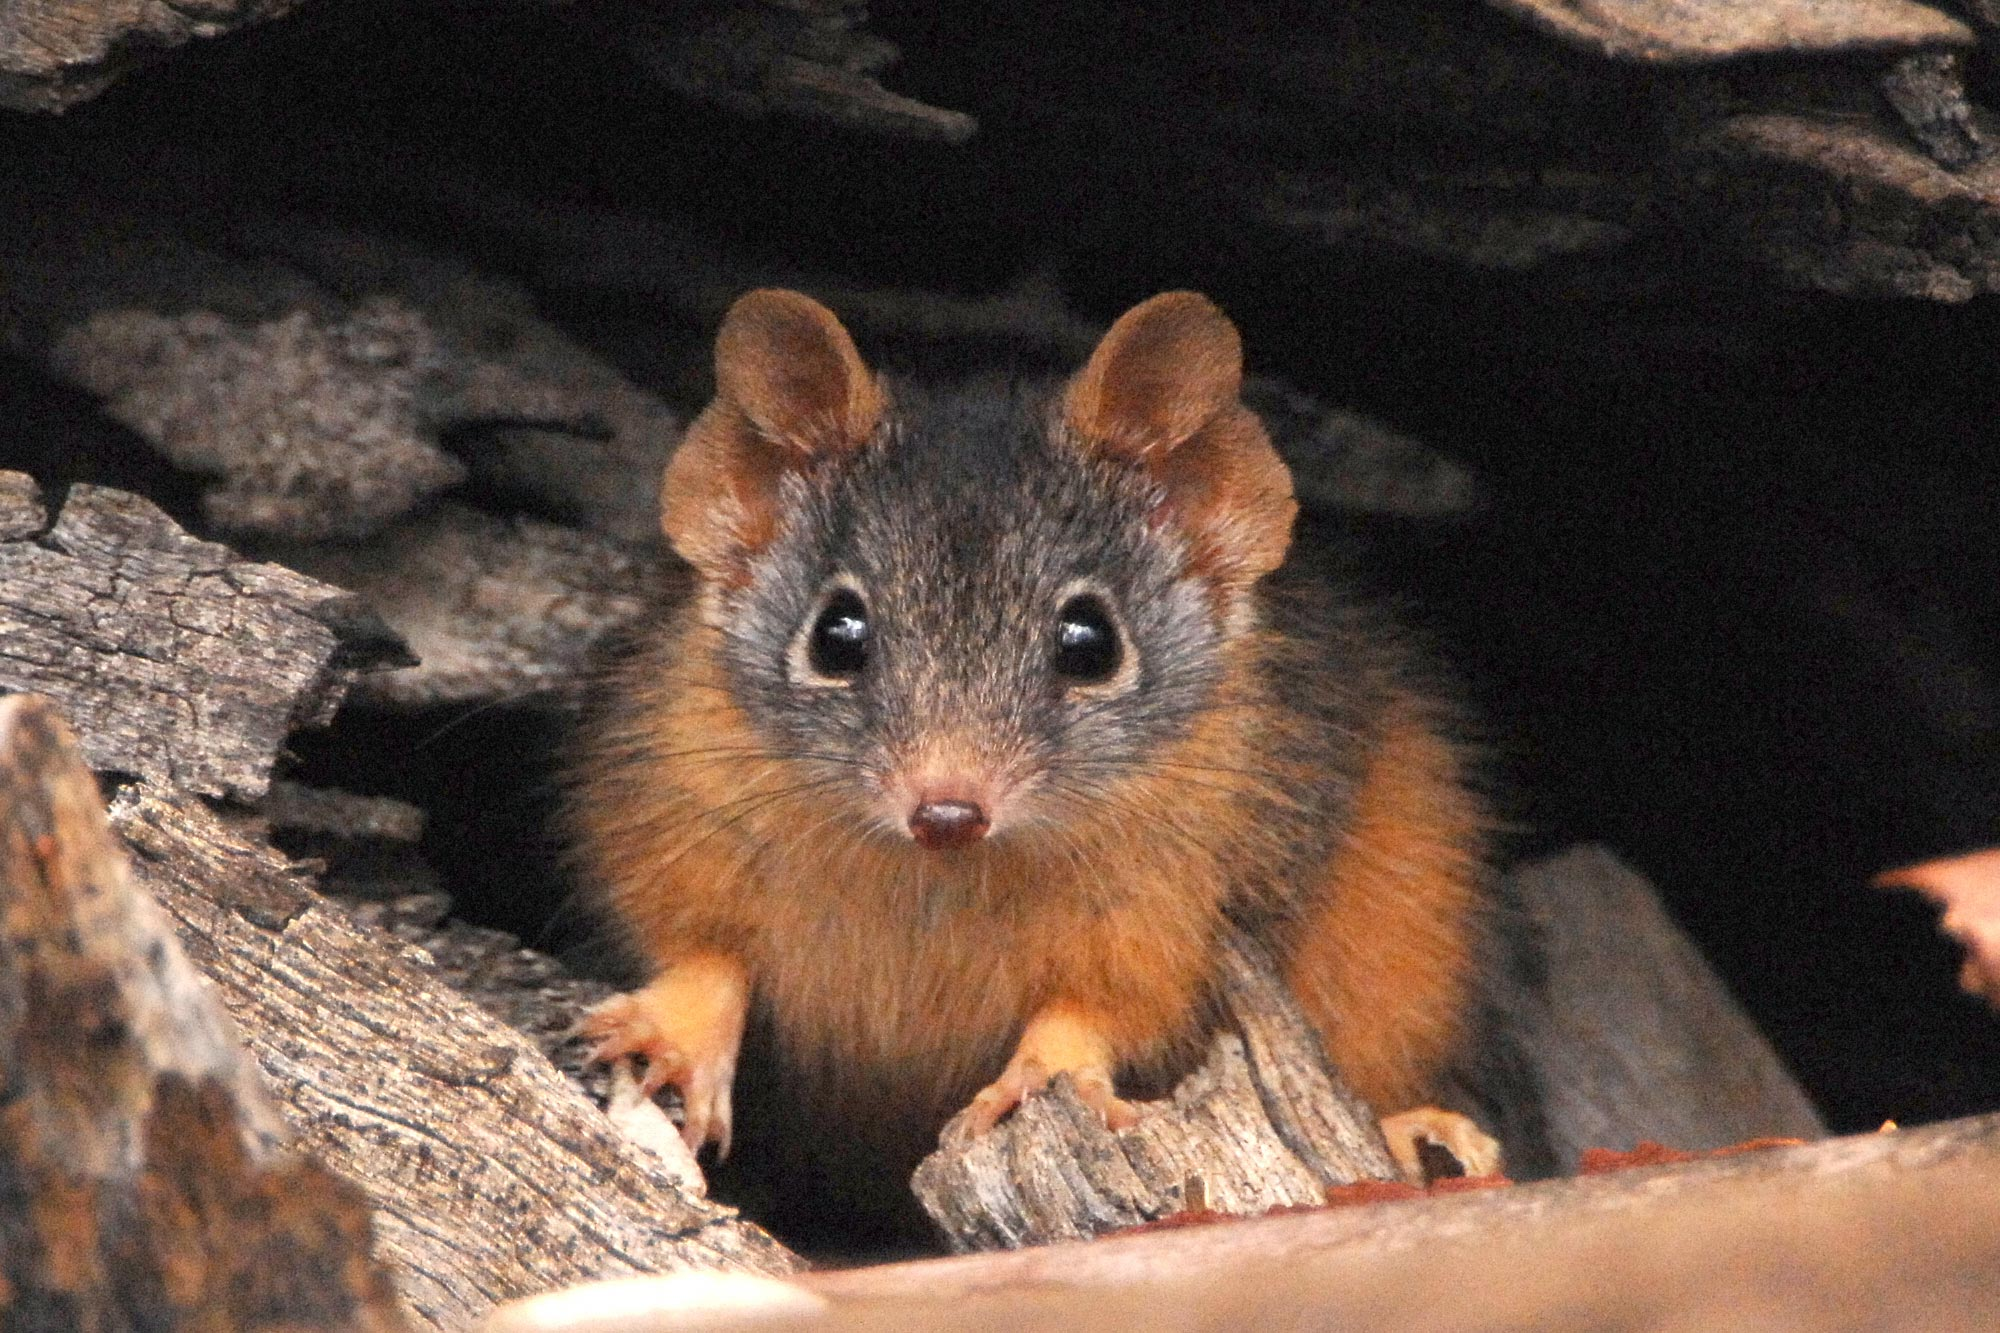 Warming Climate May Threaten Small Marsupials in Australia - SciTechDaily